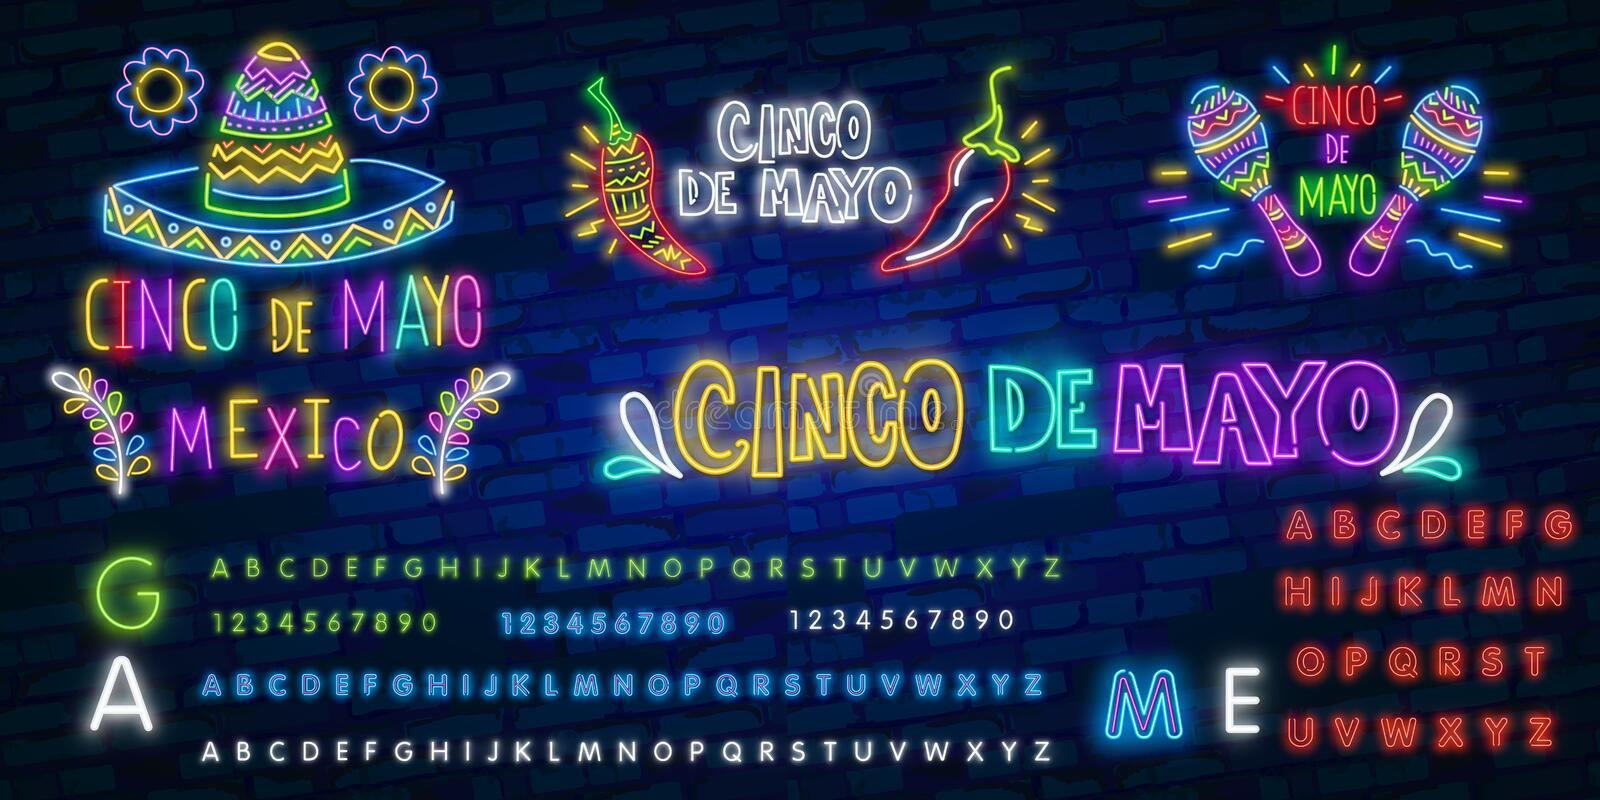 Cinco de mayo neon text with sombrero and moustache. Mexican culture and holiday design. Night bright neon sign, colorful. Billboard, light banner royalty free stock image